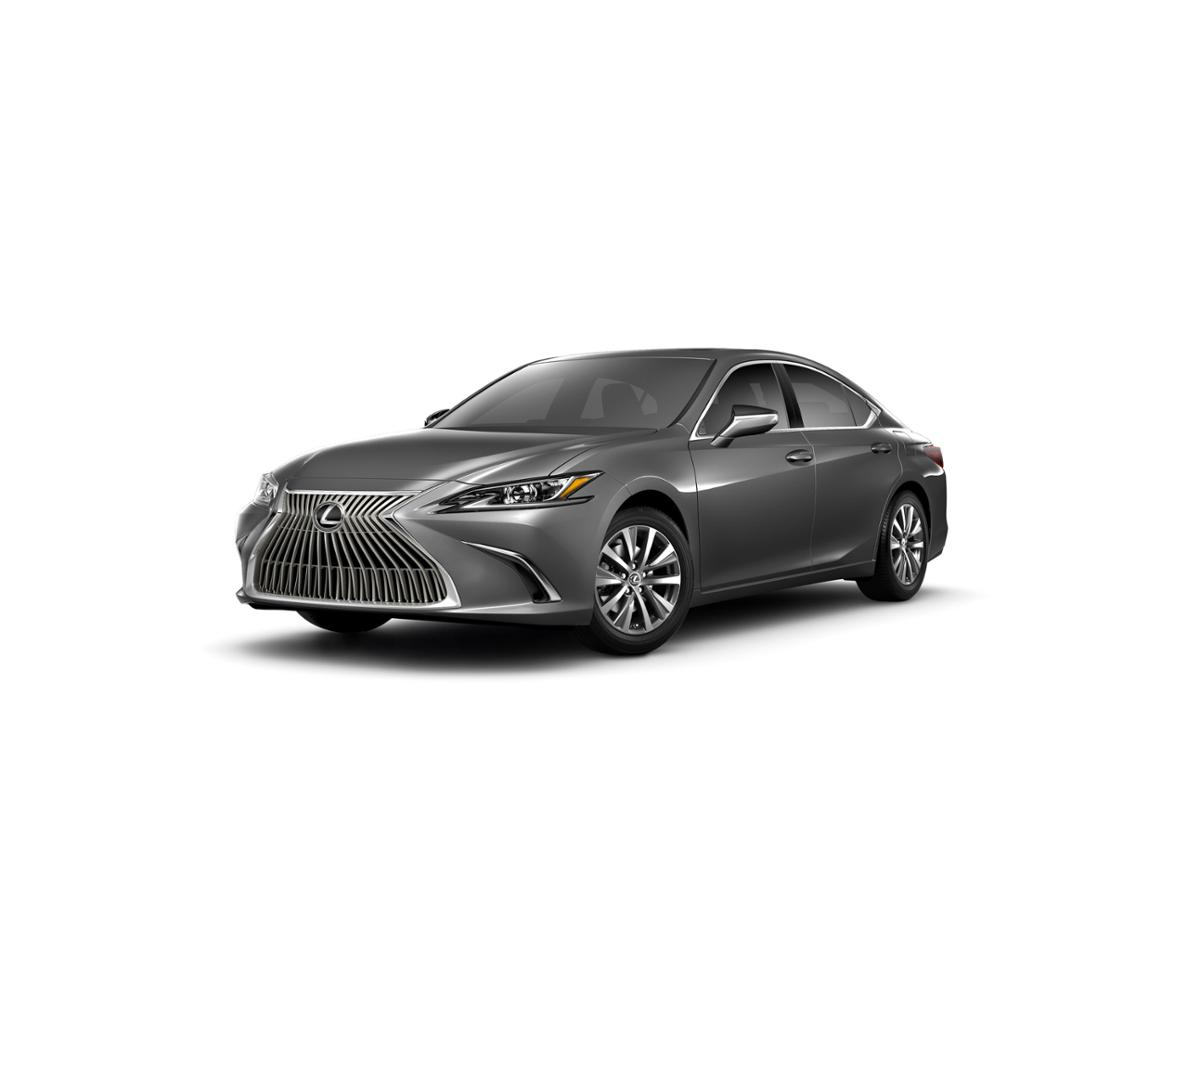 2019 Lexus ES 350 Vehicle Photo in Santa Barbara, CA 93105